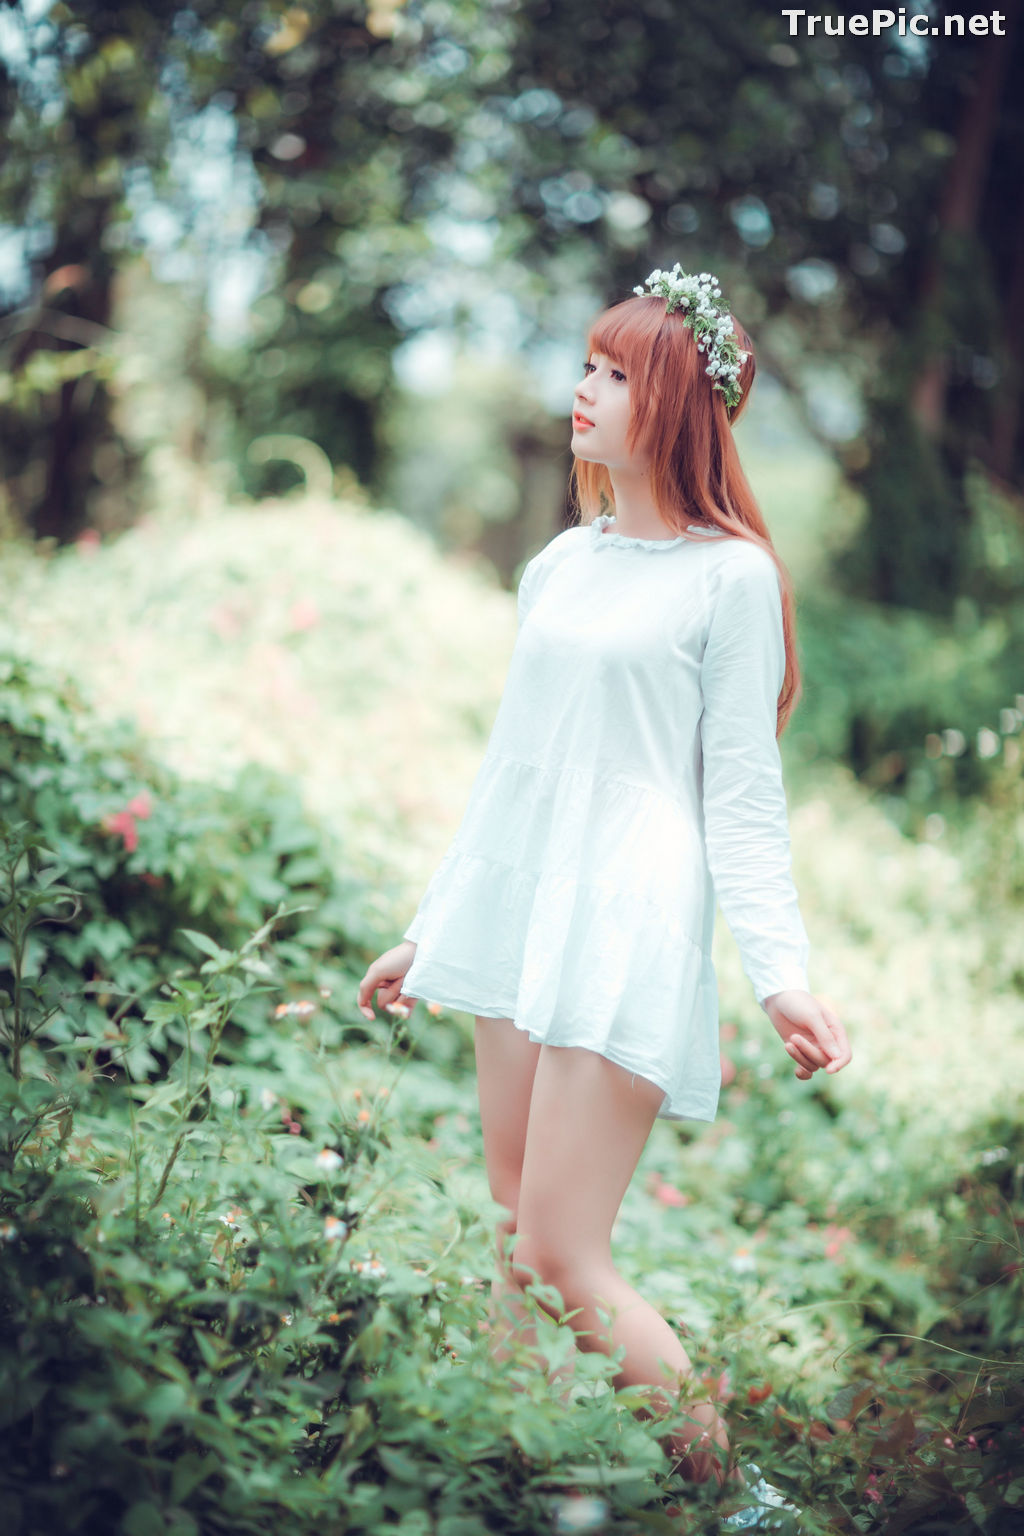 Image Vietnamese Hot Girl - Le Ly Lan Huong - Angel Of The Forest - TruePic.net - Picture-3